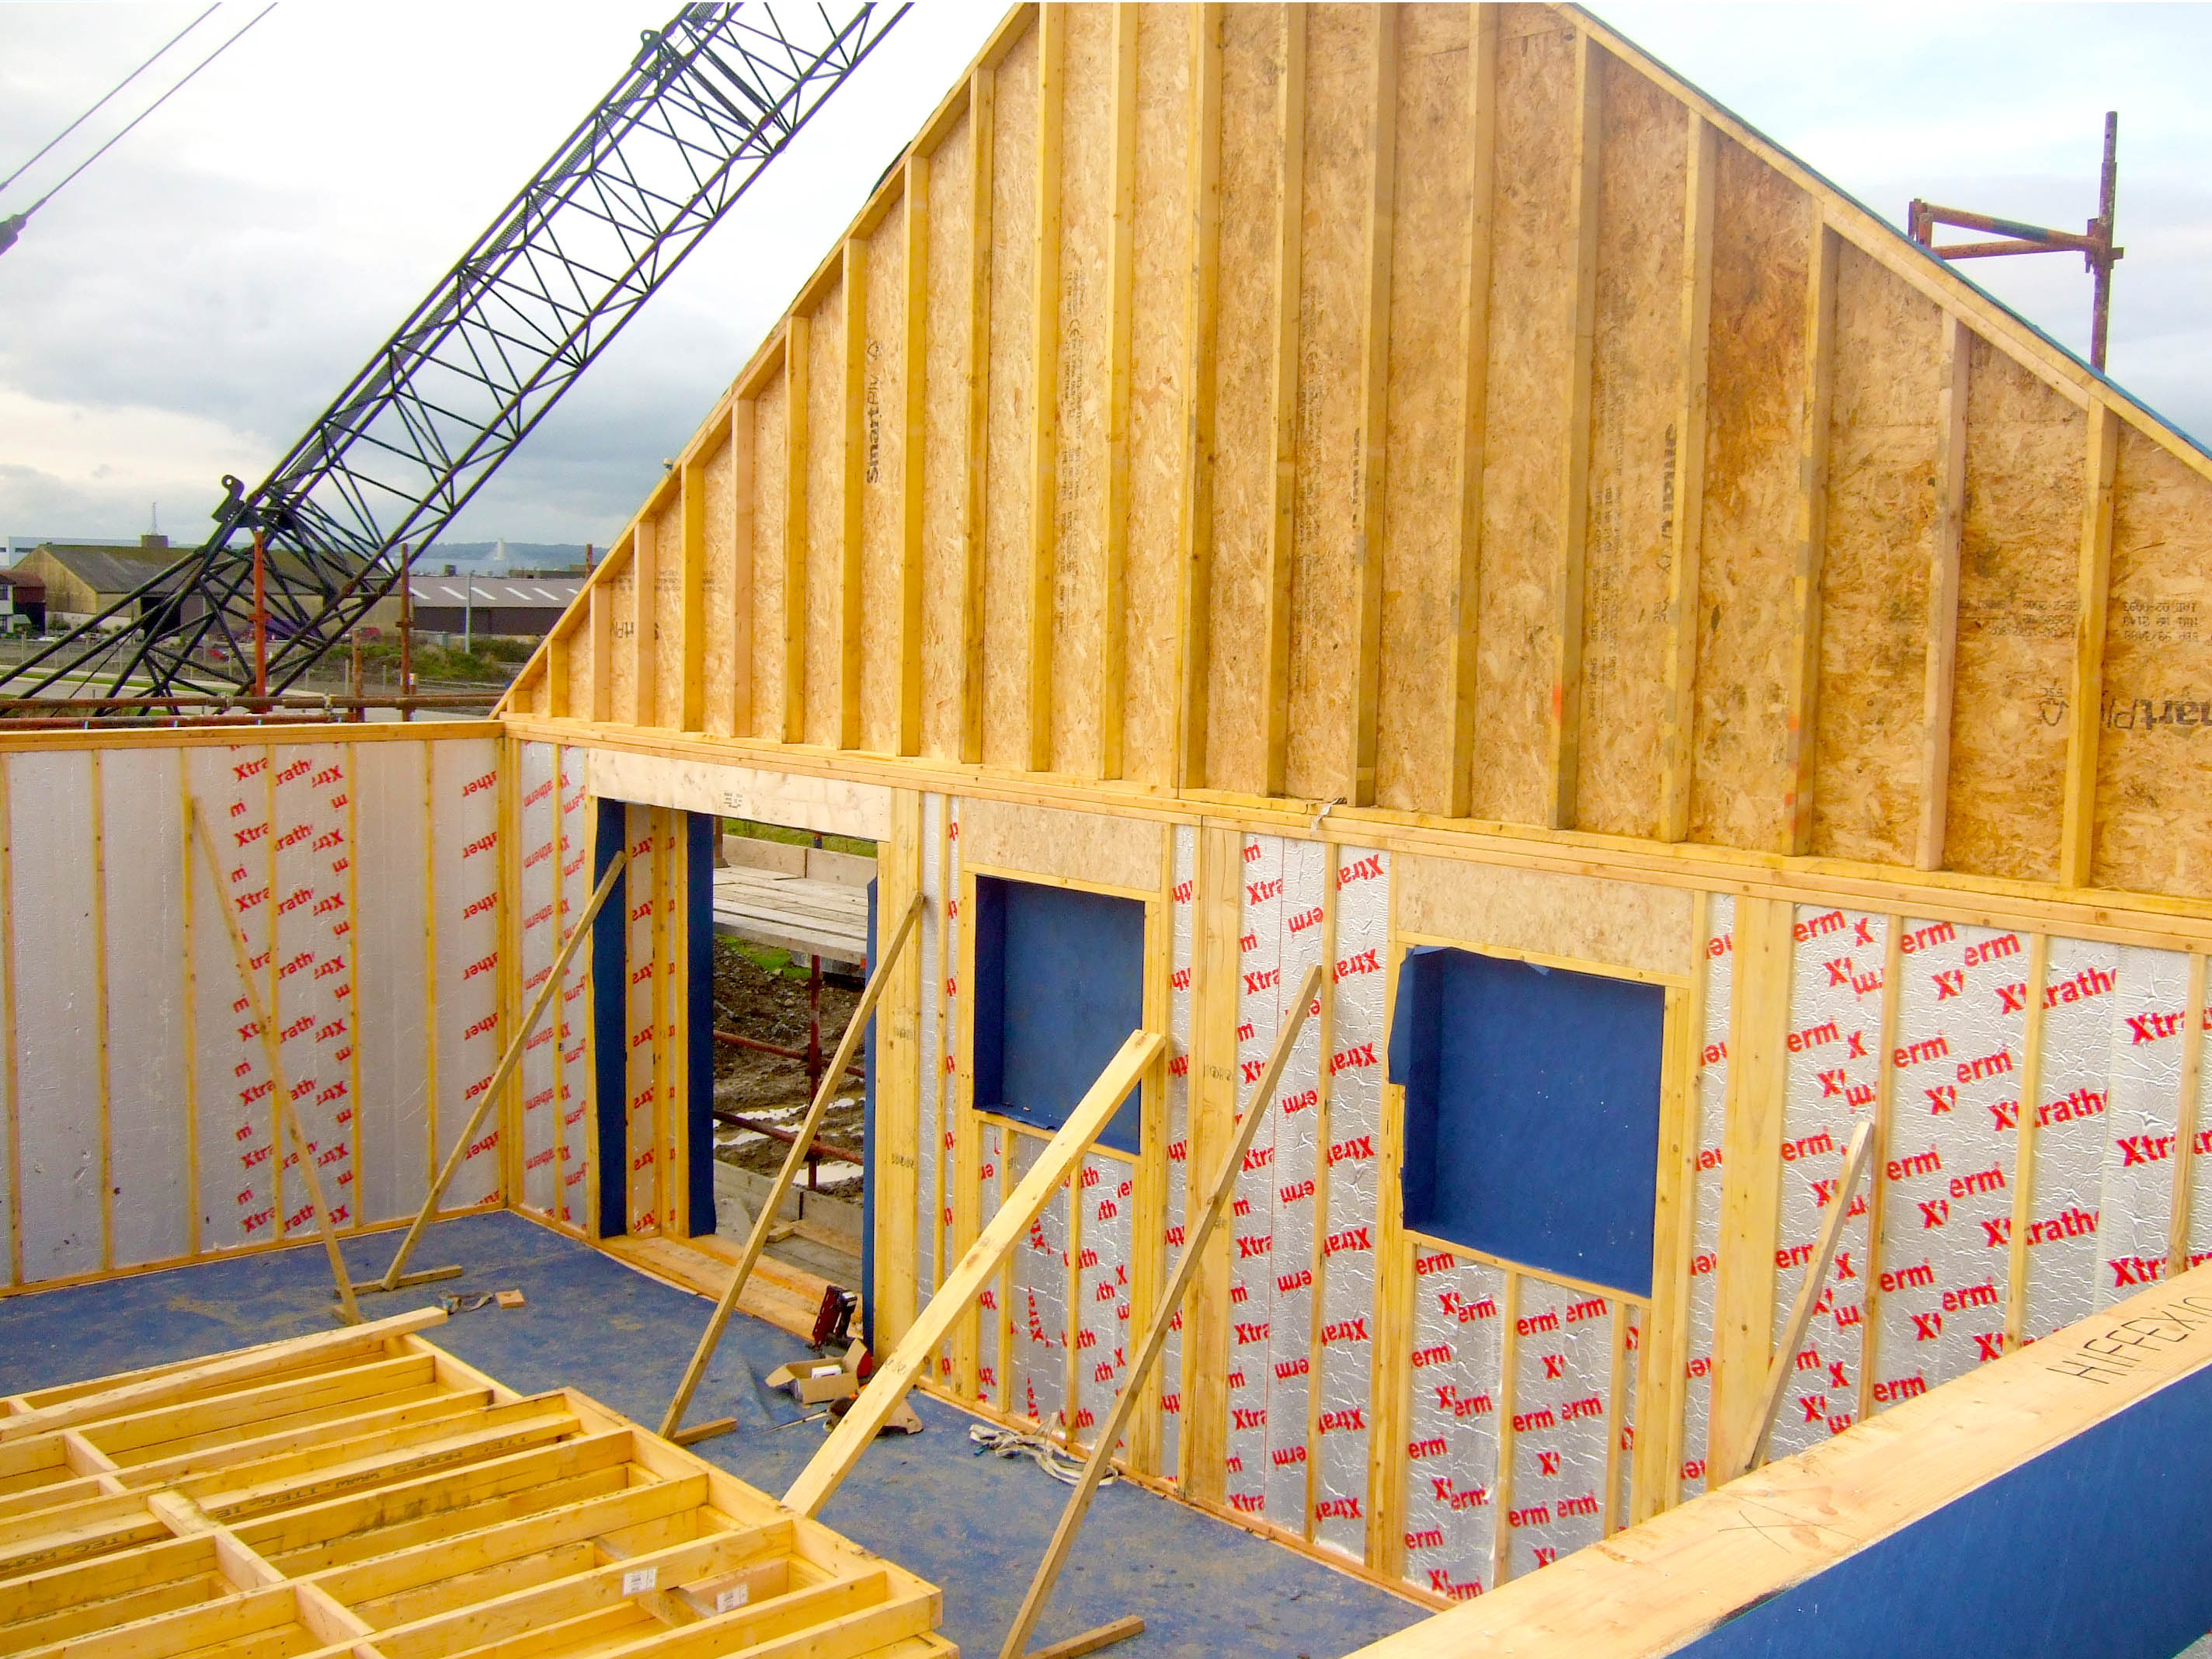 Manley timber frame manley construction duleek co for How to build a timber frame house